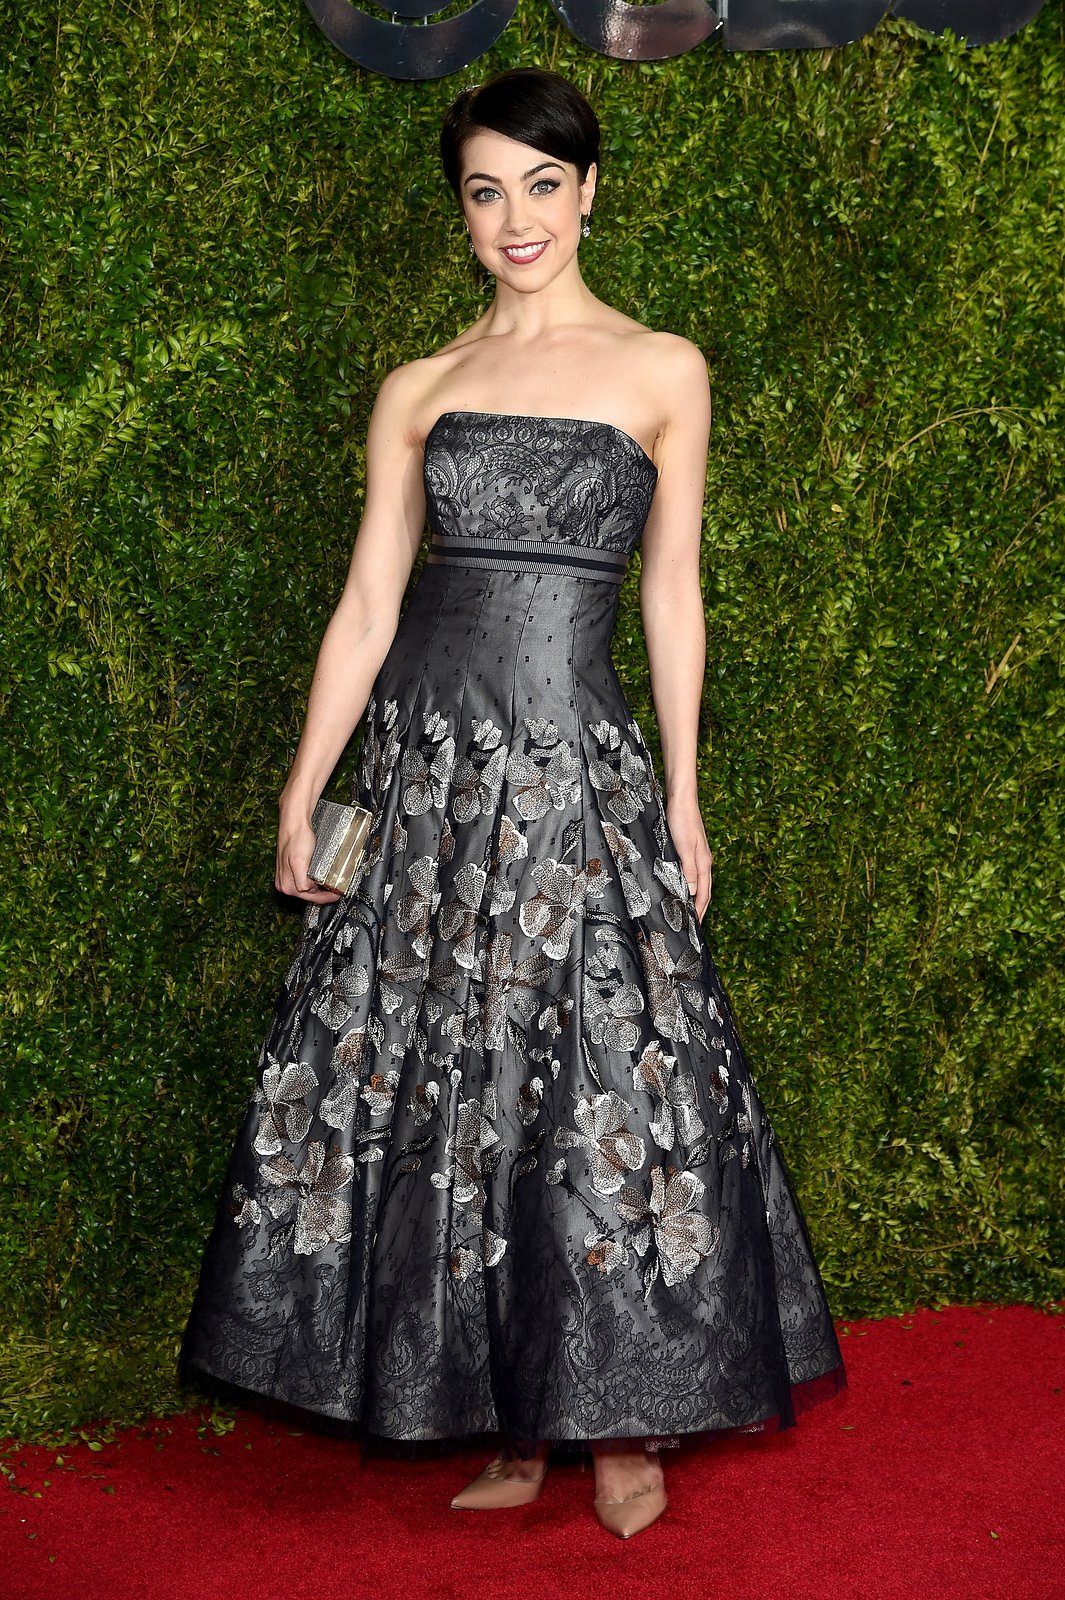 http://media.vogue.com/r/h_1600,w_1240/2015/06/07/leanne-cope-tonys-red-carpet.jpg